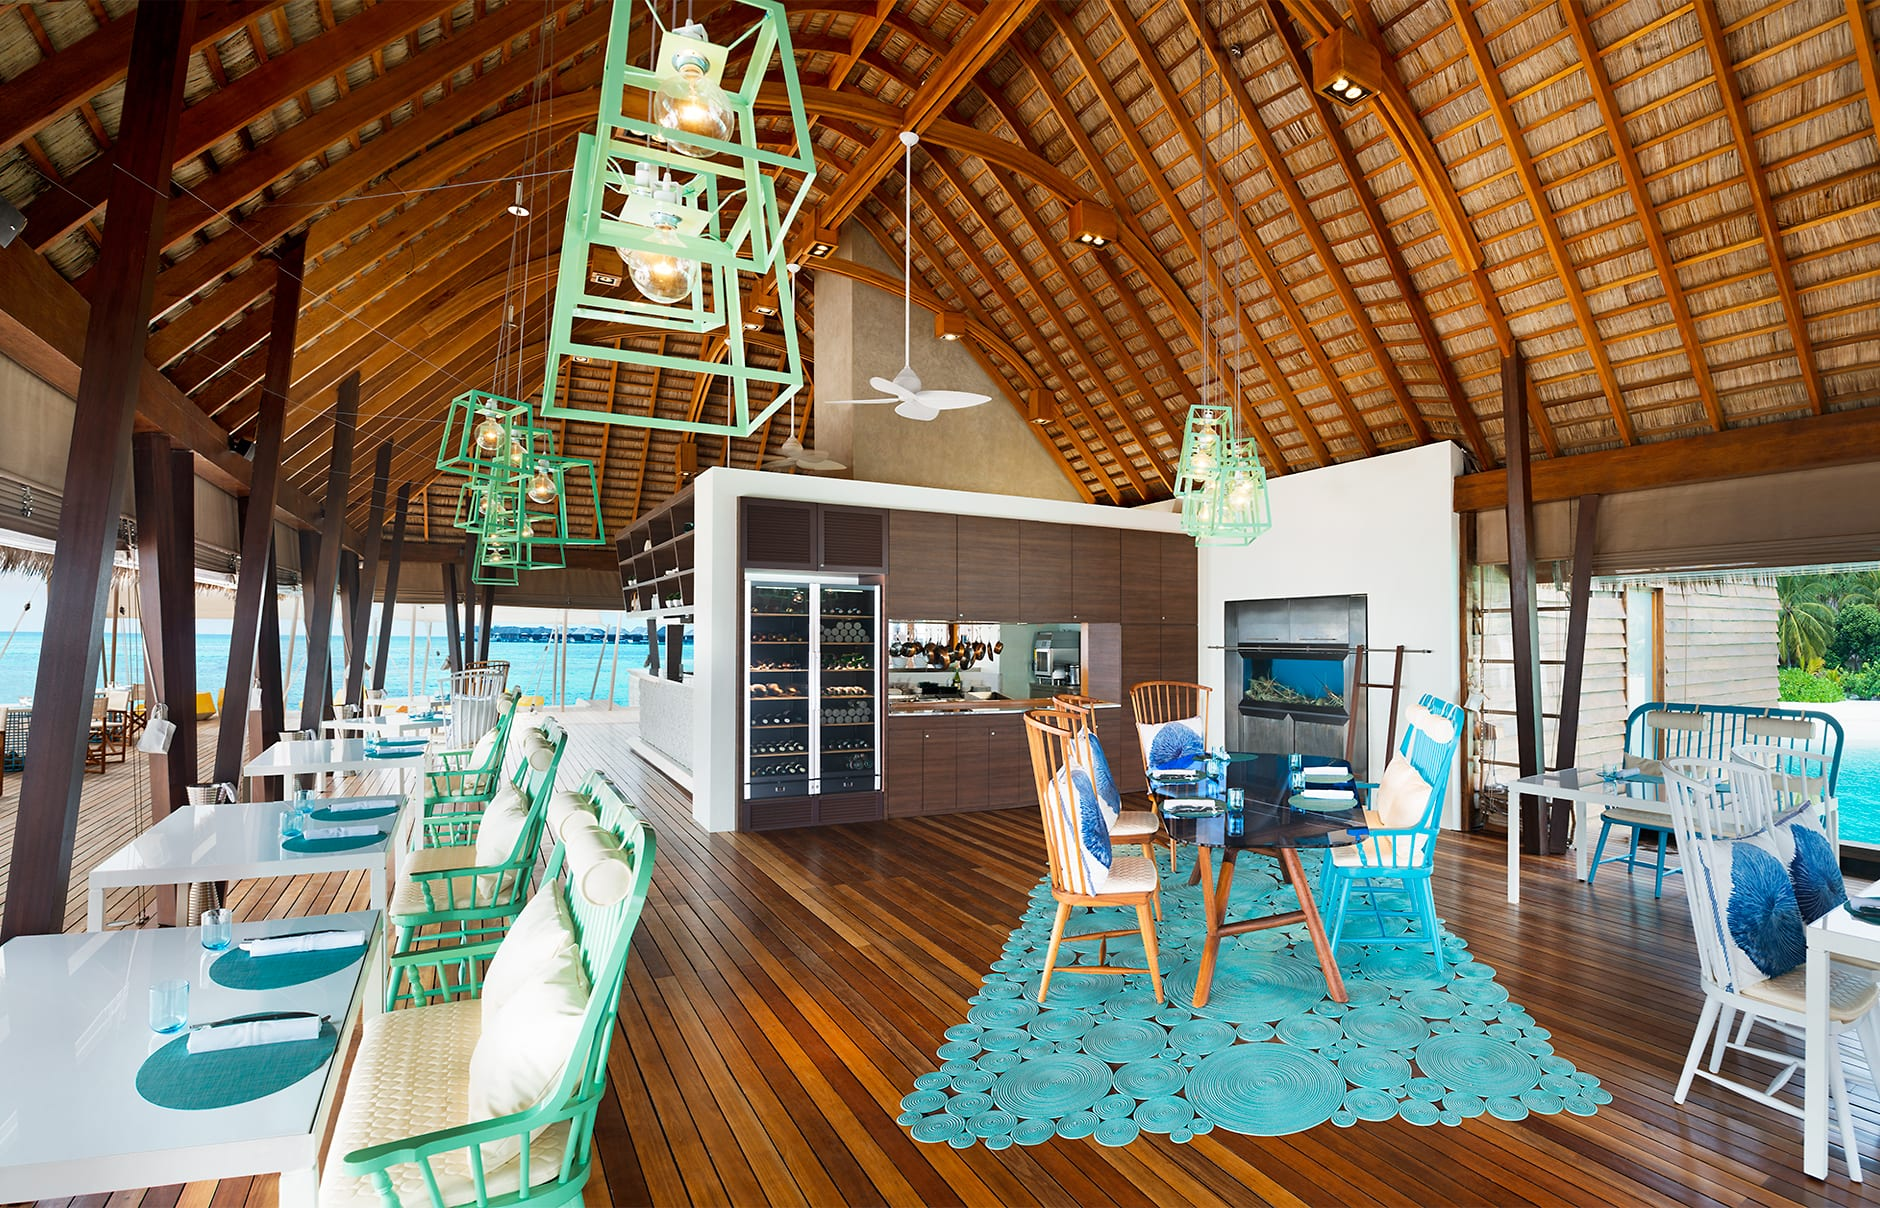 Fish Restaurant. W Maldives, Fesdu Island, Maldives. Hotel Review by TravelPlusStyle. Photo © Marriott International